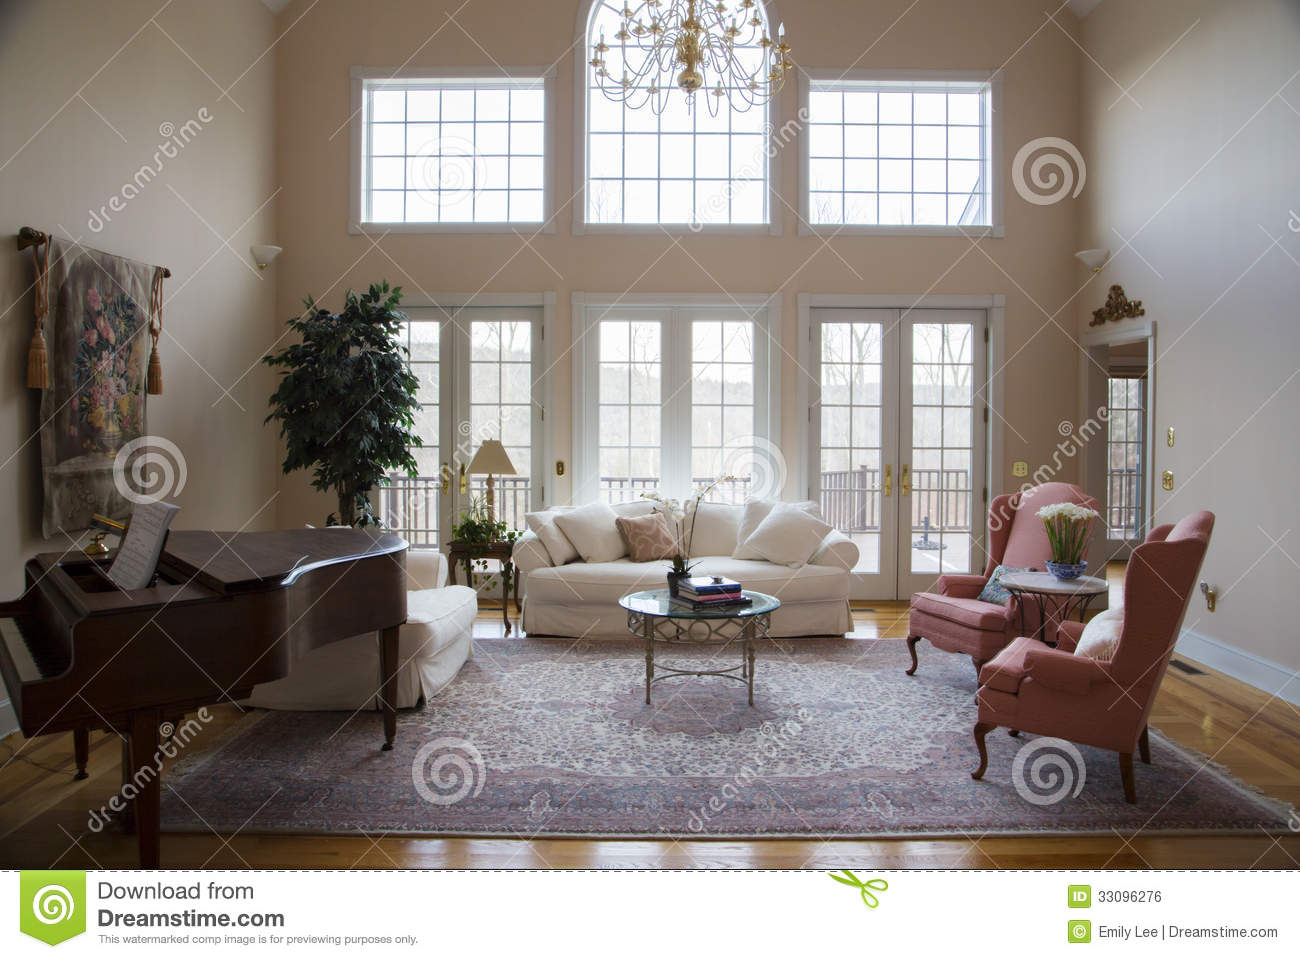 Formal living room royalty free stock image image 33096276 for Accent colors for neutral rooms